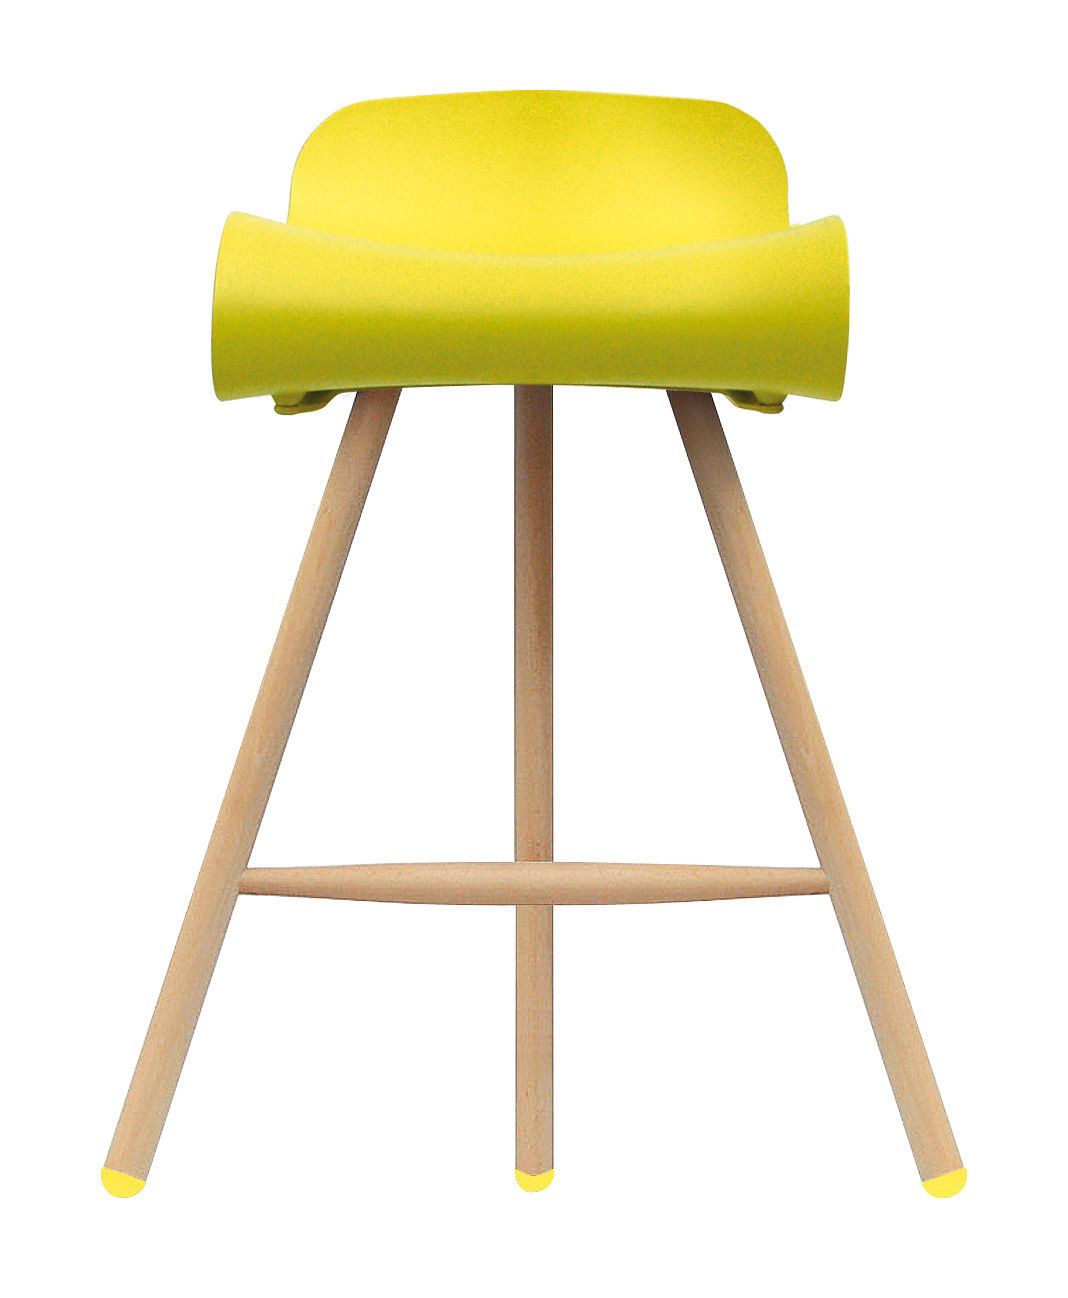 Tabouret de bar BCN Wood Kristalia - Jaune/Bois naturel | Made In Design